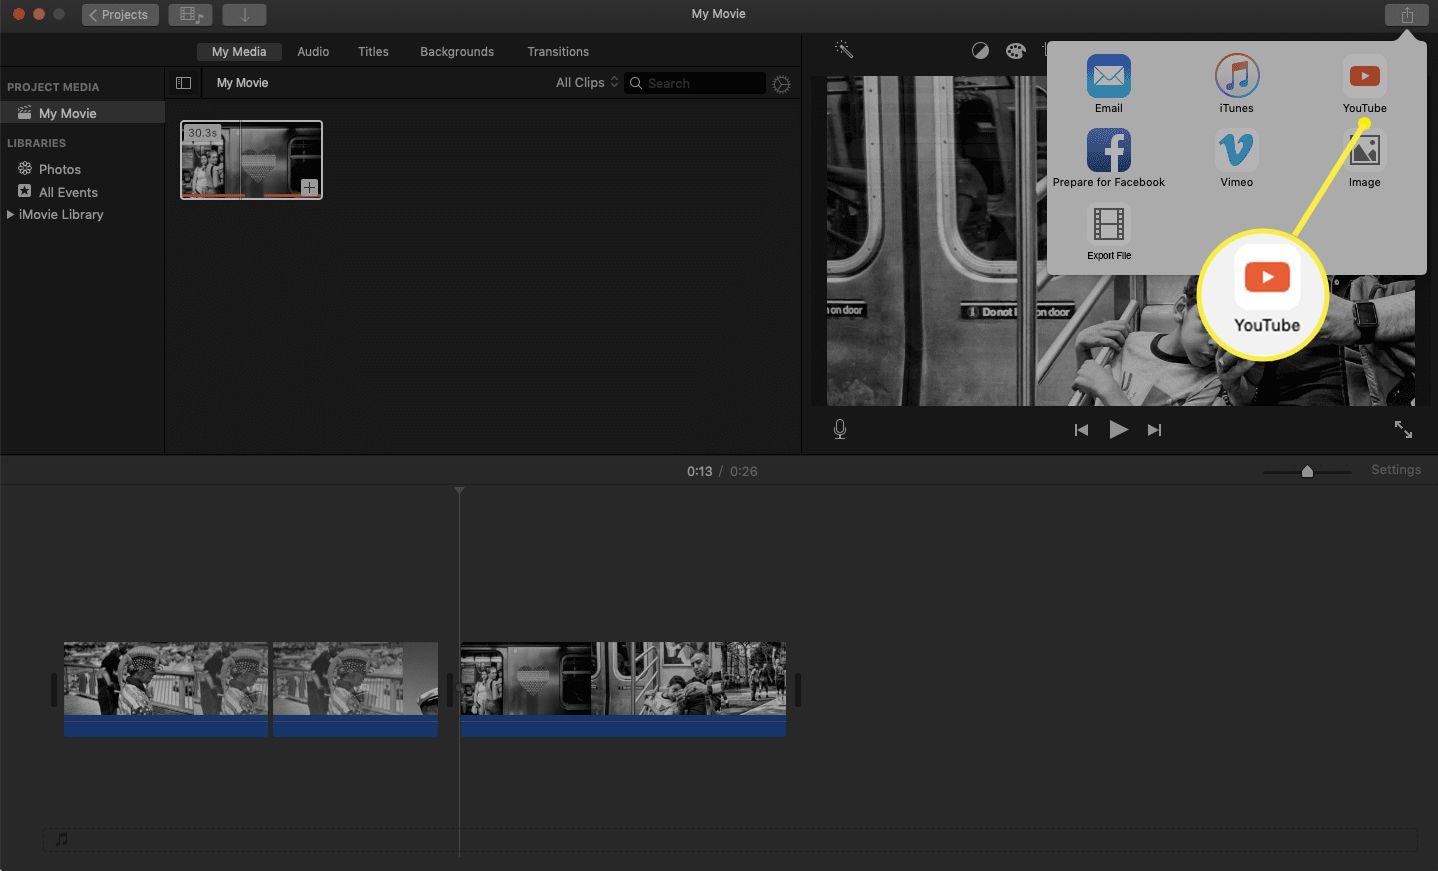 iMovie share tab with the You Tube icon highlighted.